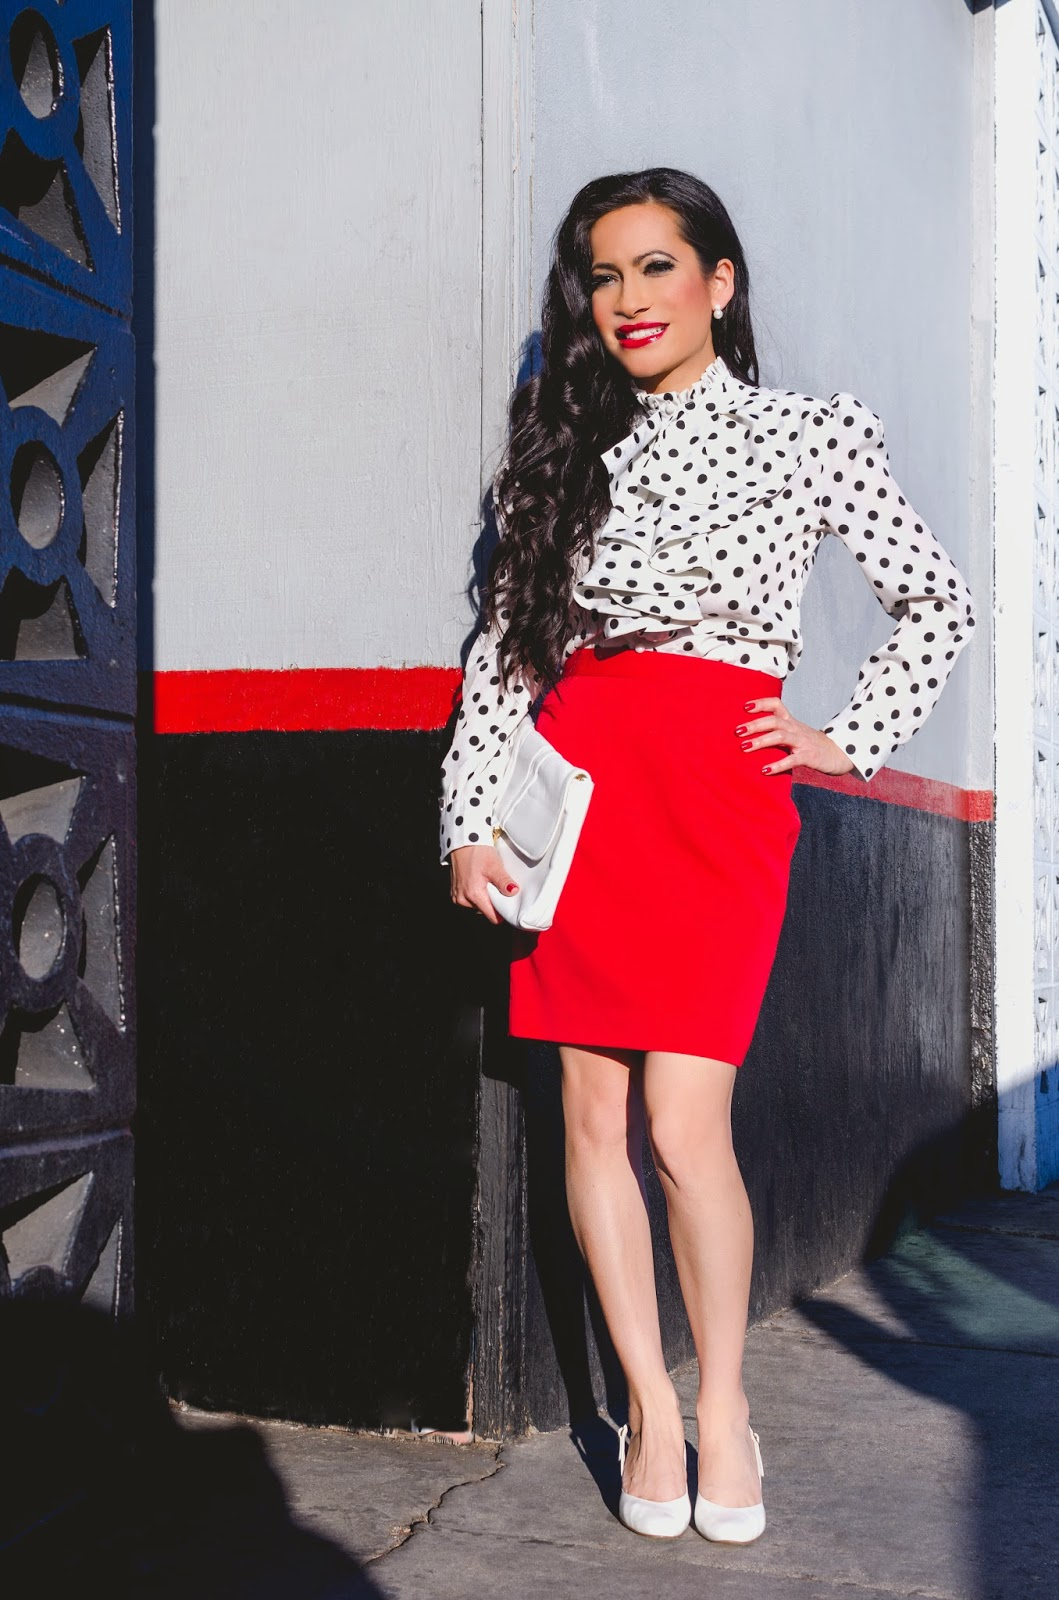 Yanyifang Polka Dot Ruffle Shirt Red Pencil Skirt Vintage Shoes White Flap Bag